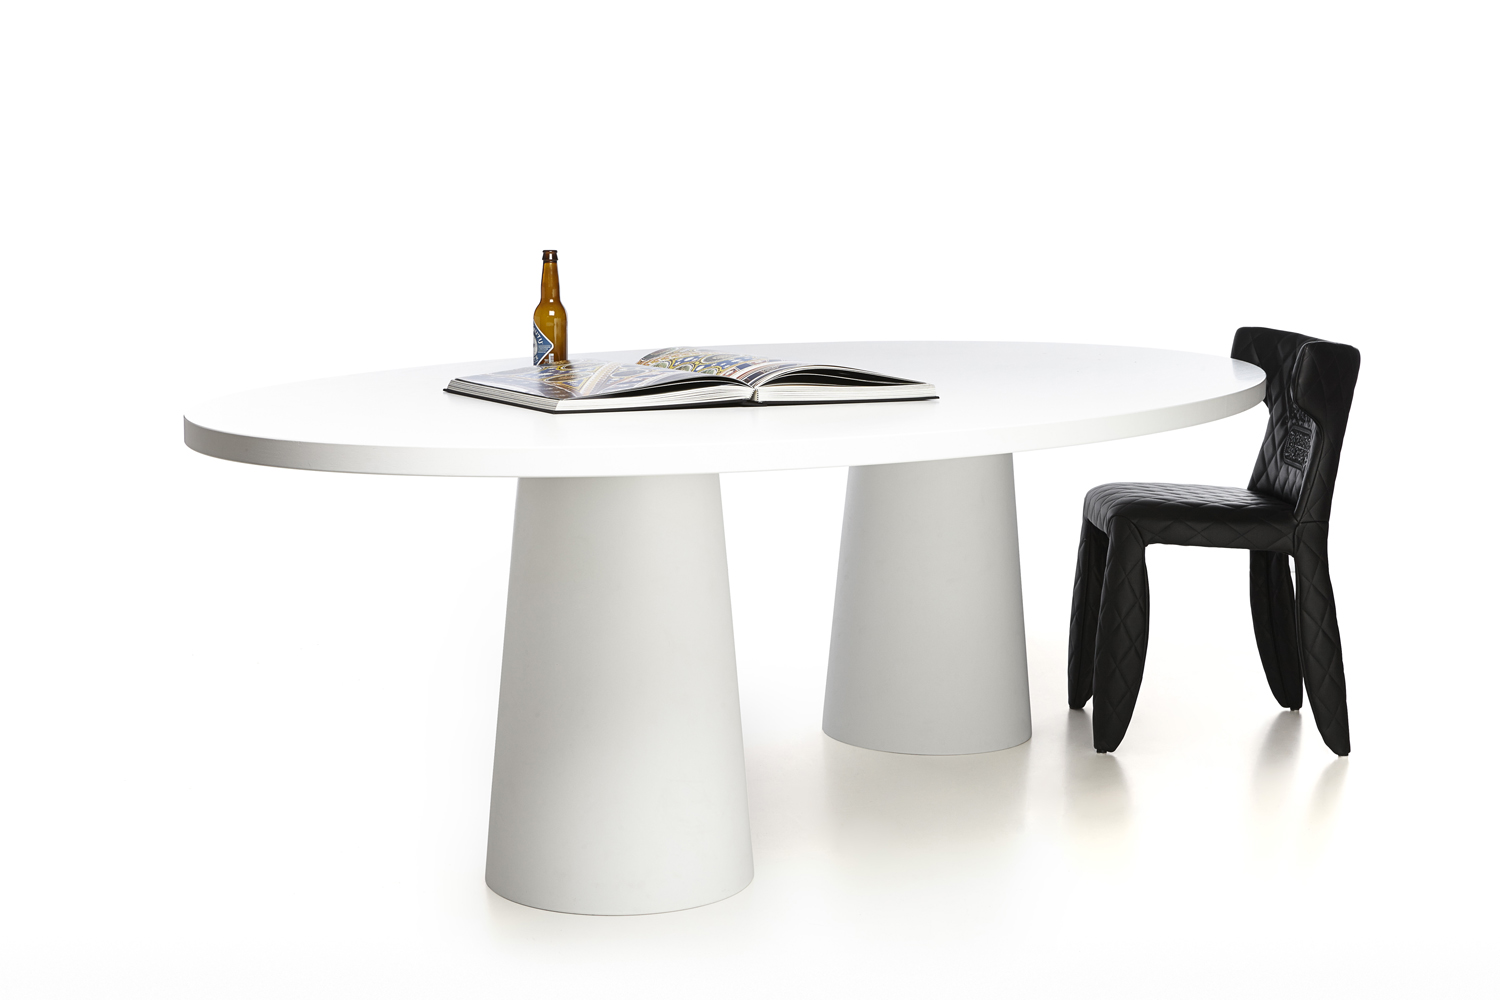 container-oval-260-2-300dpi-moooi